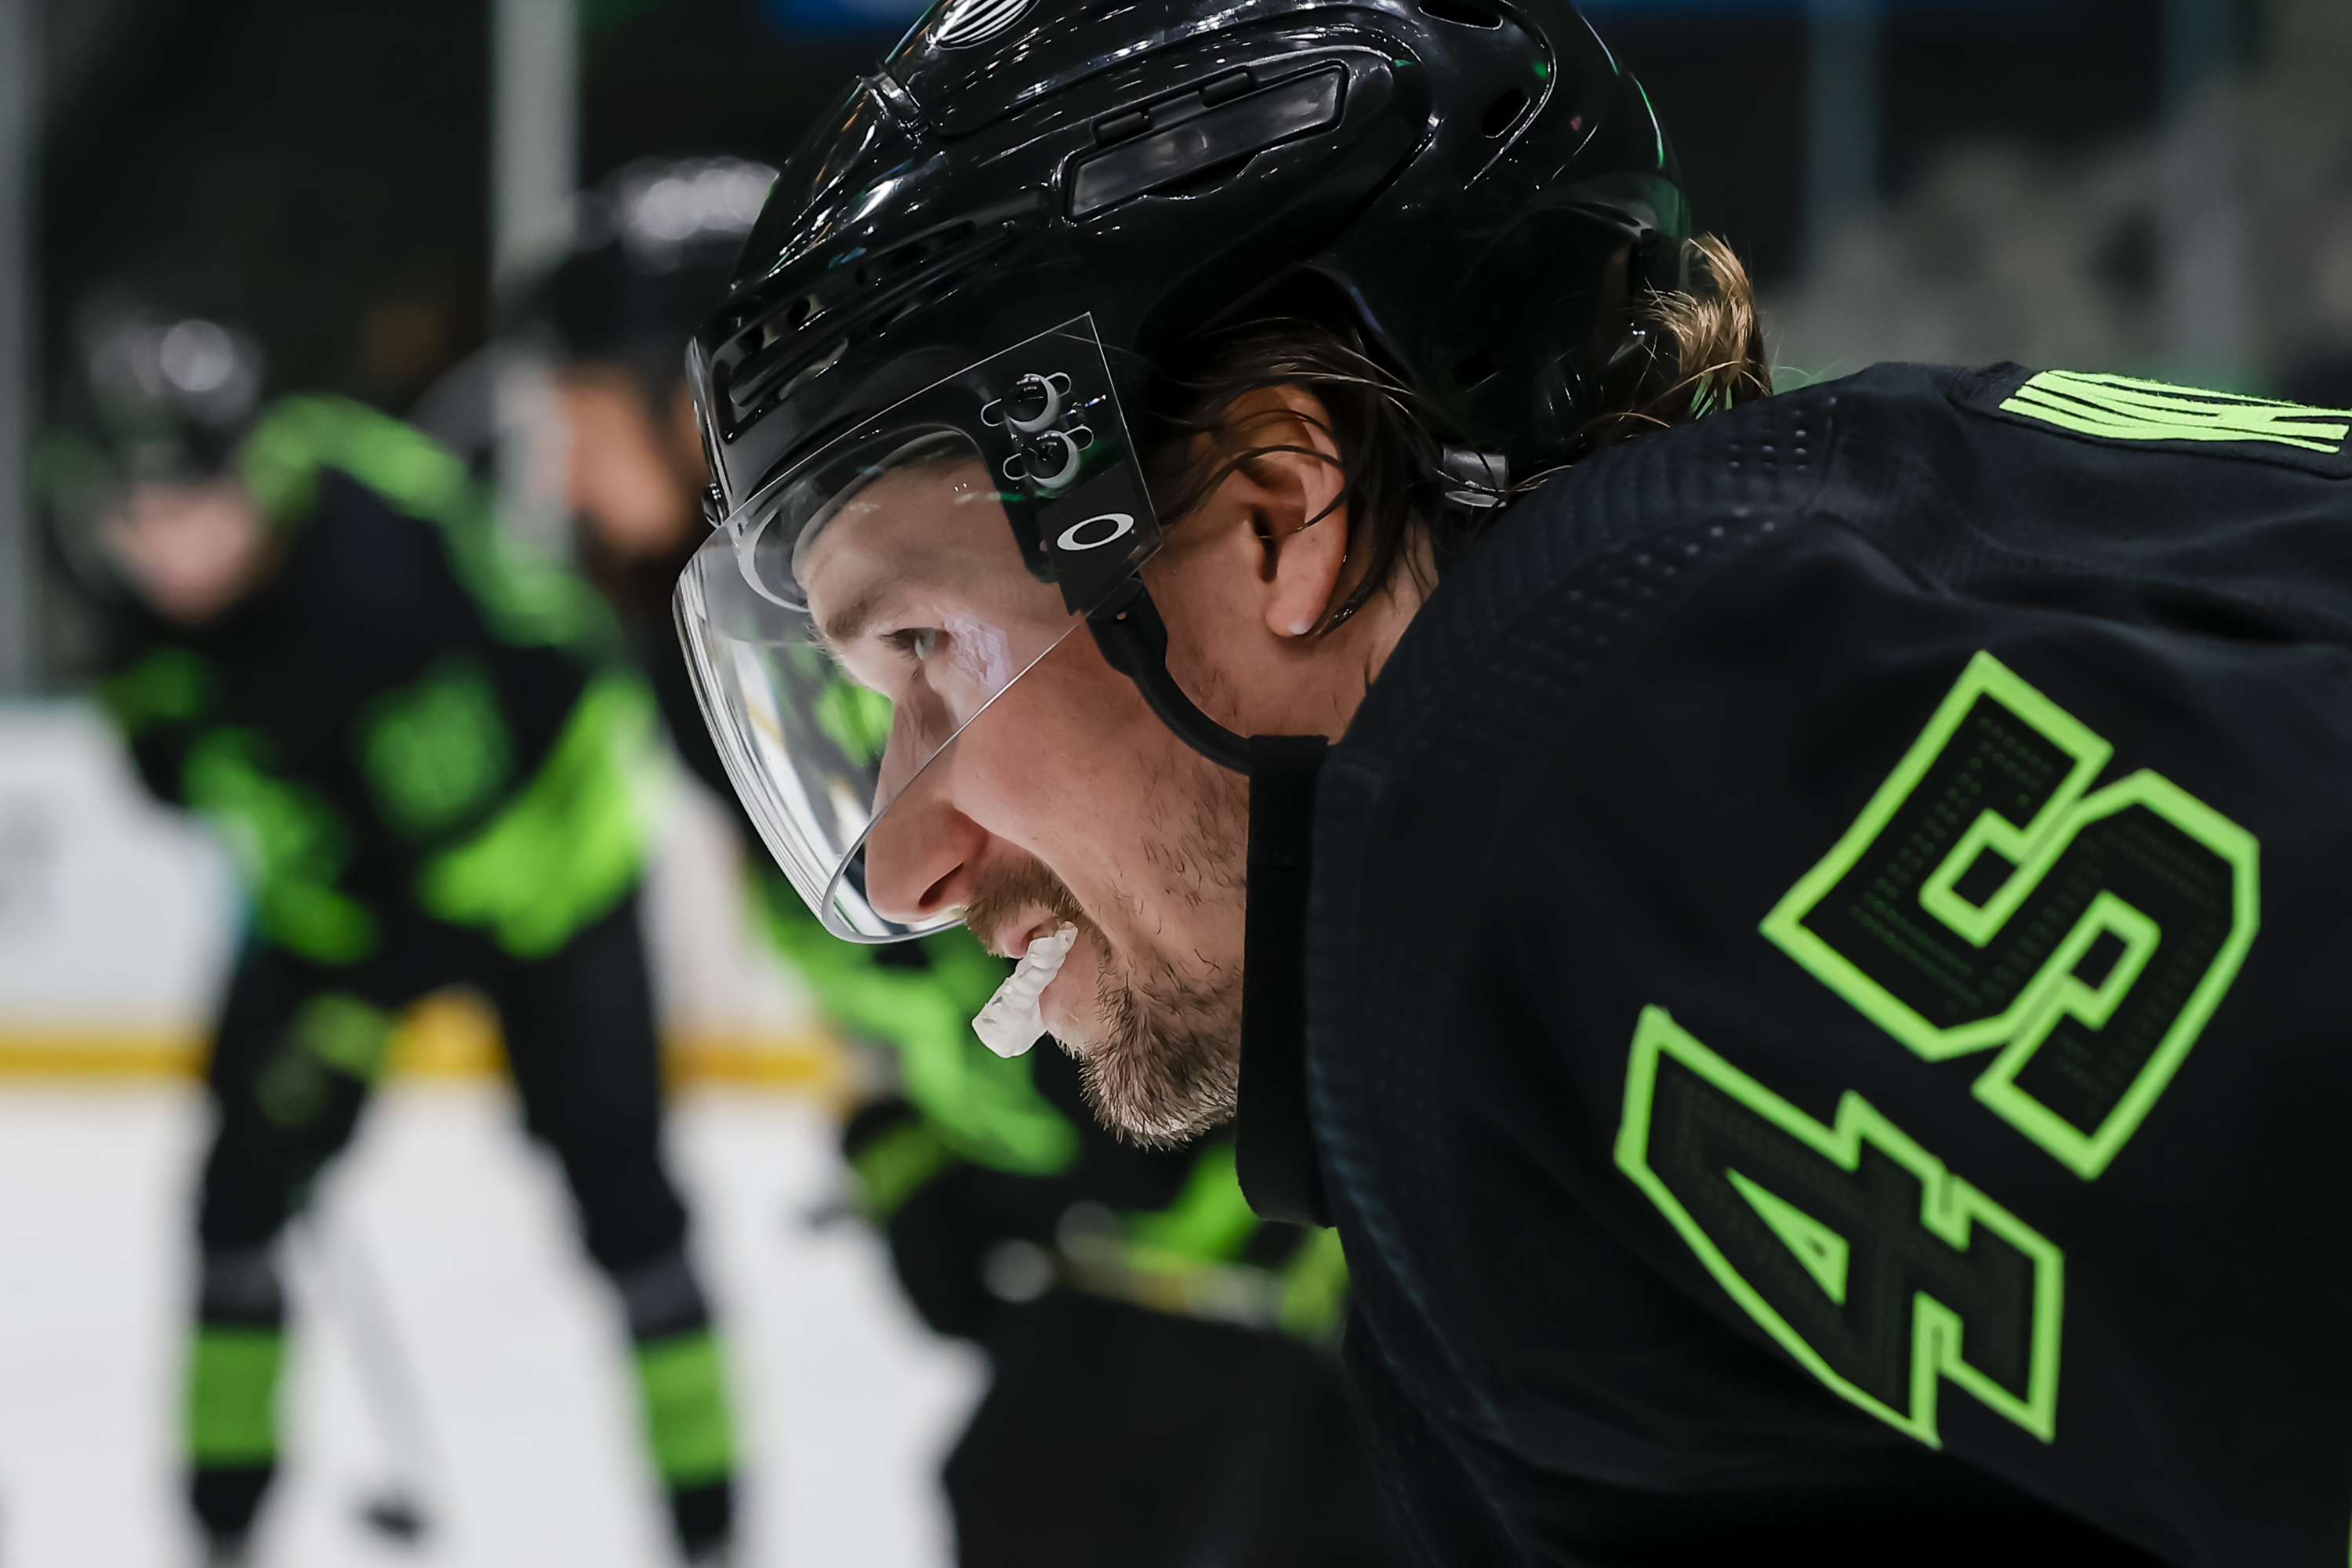 Dallas Stars defenseman Sami Vatanen (45) waits for play to start during the game between the Dallas Stars and the Carolina Hurricanes on April 26, 2021 at the American Airlines Center in Dallas, Texas.